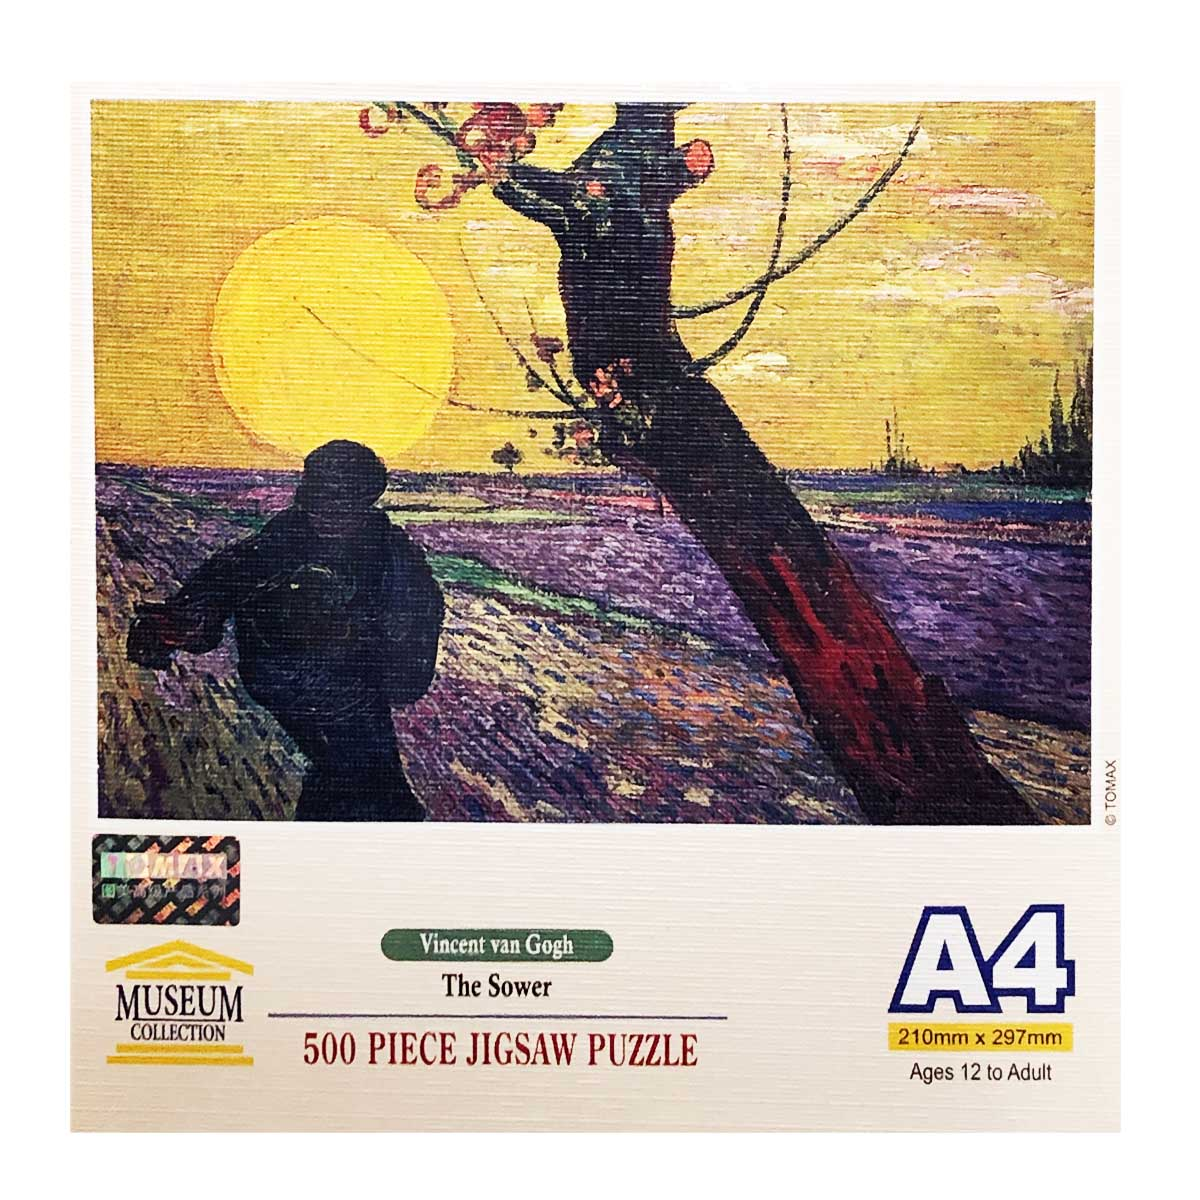 The Sower Fine Art Jigsaw Puzzle